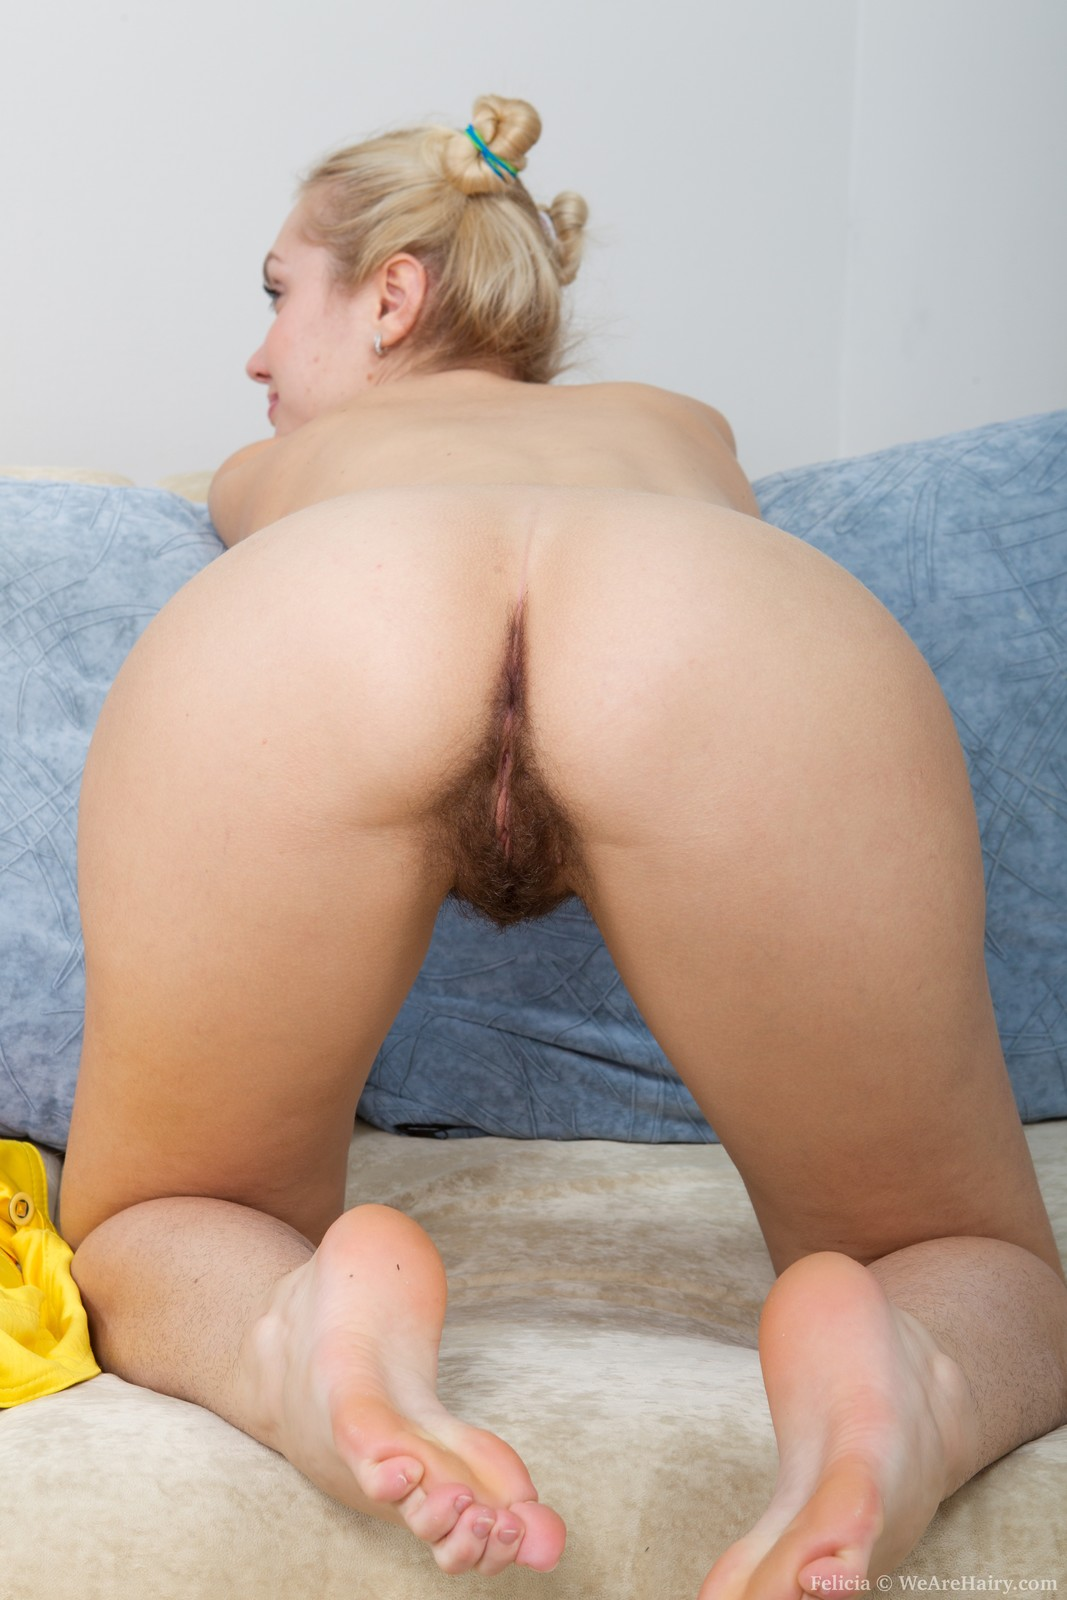 hairy butt nude girls